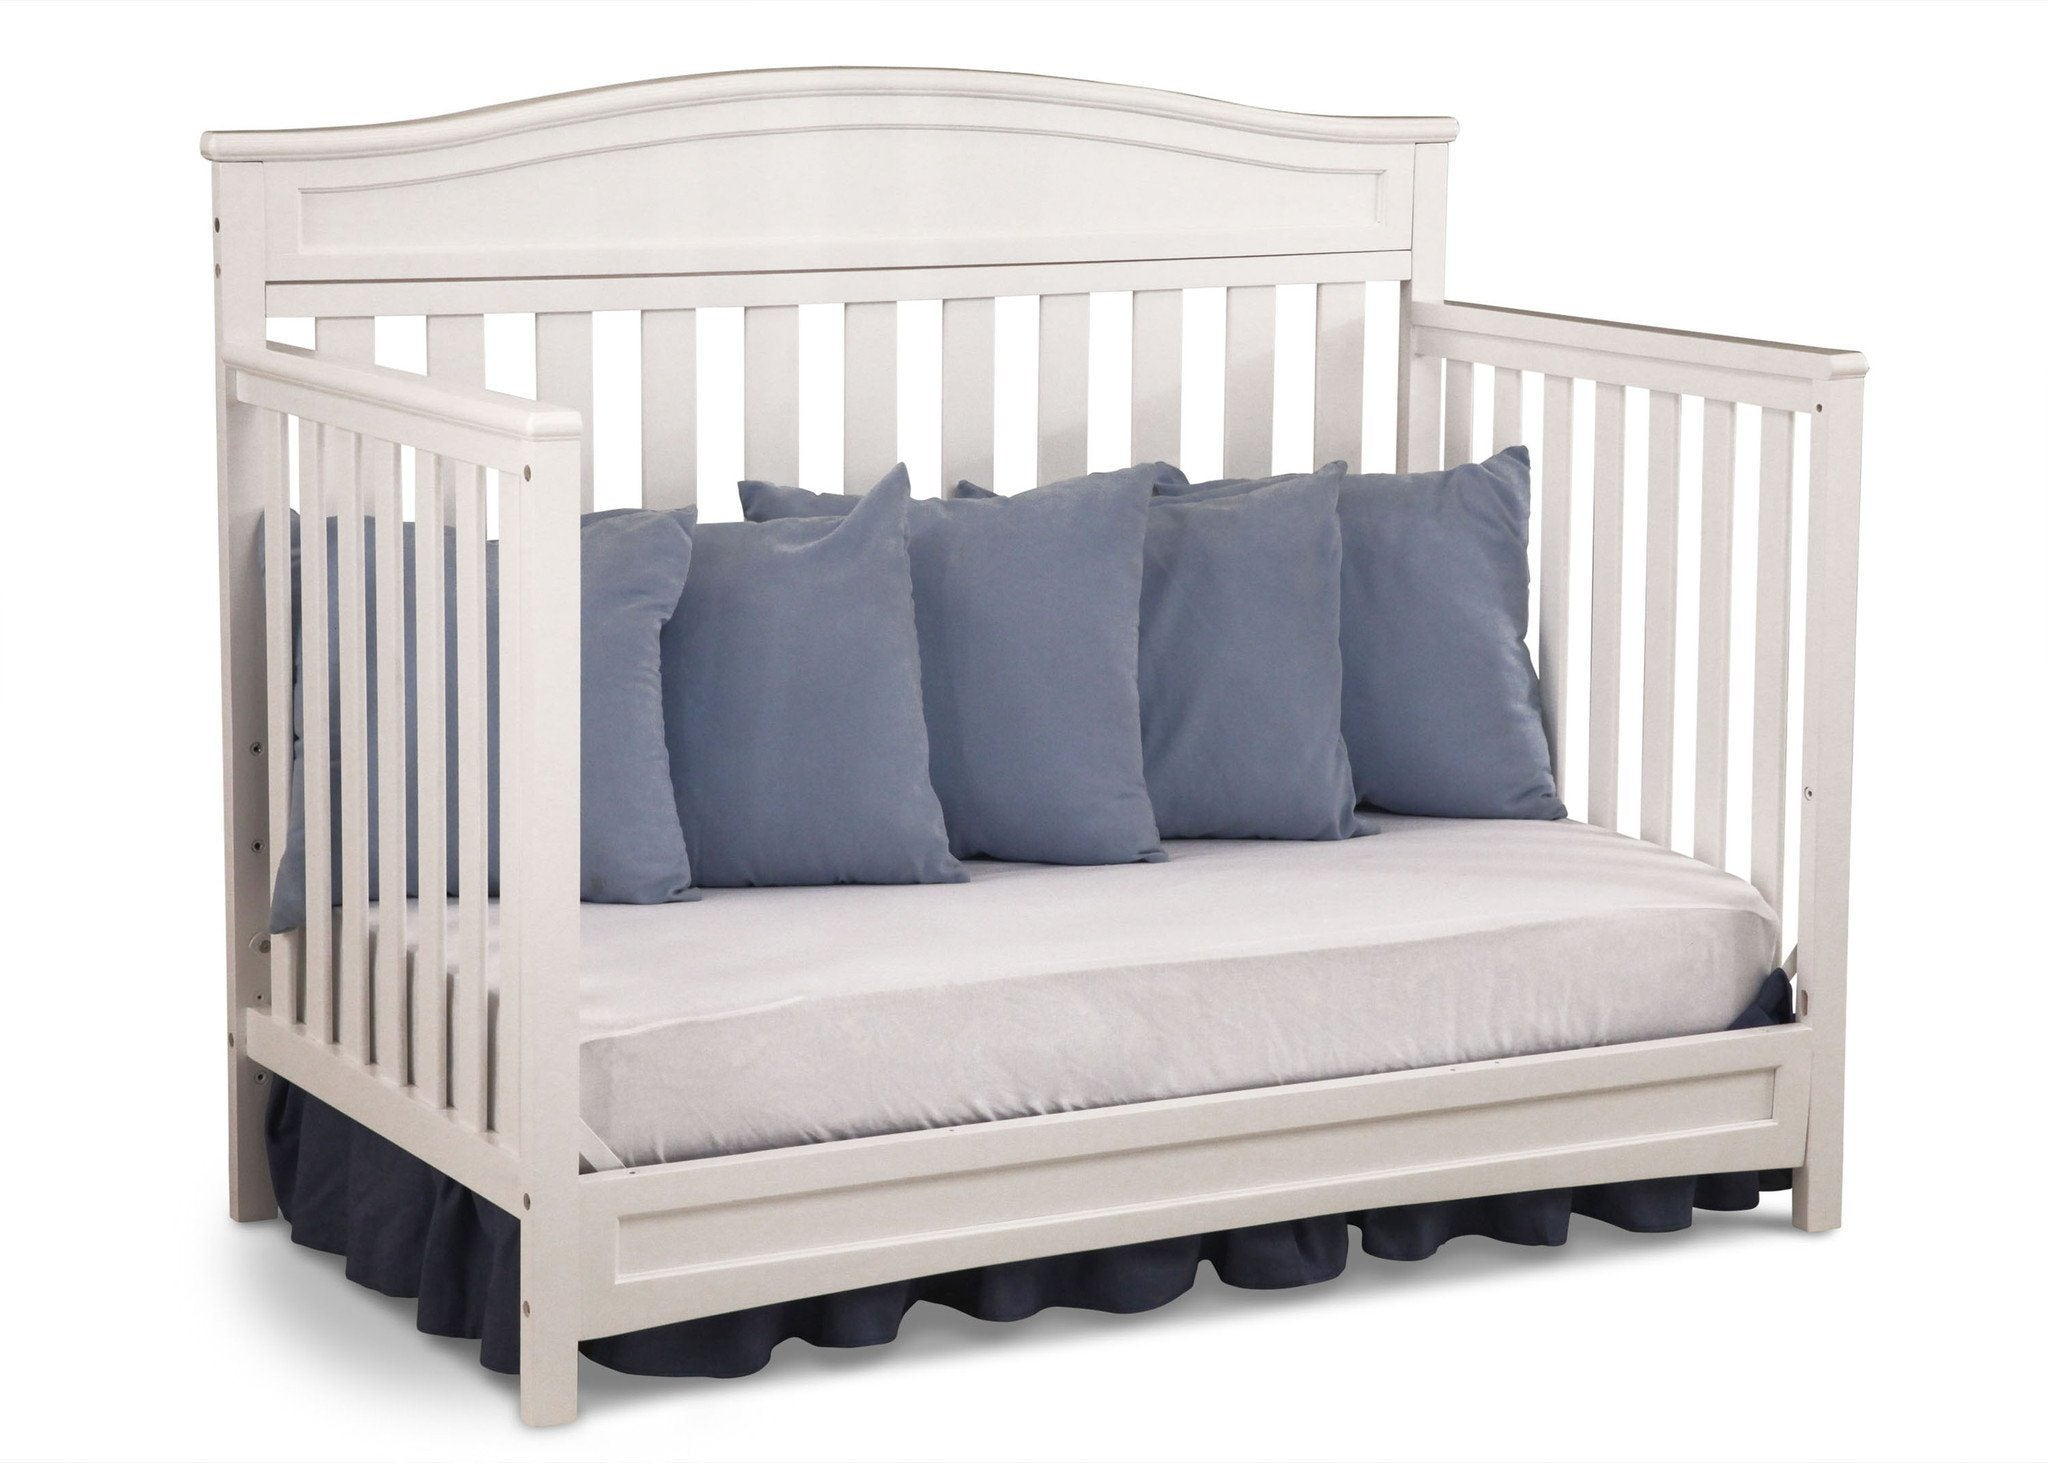 Delta Children White (100) Essington 4-in-1 Crib angled conversion to daybed a5a